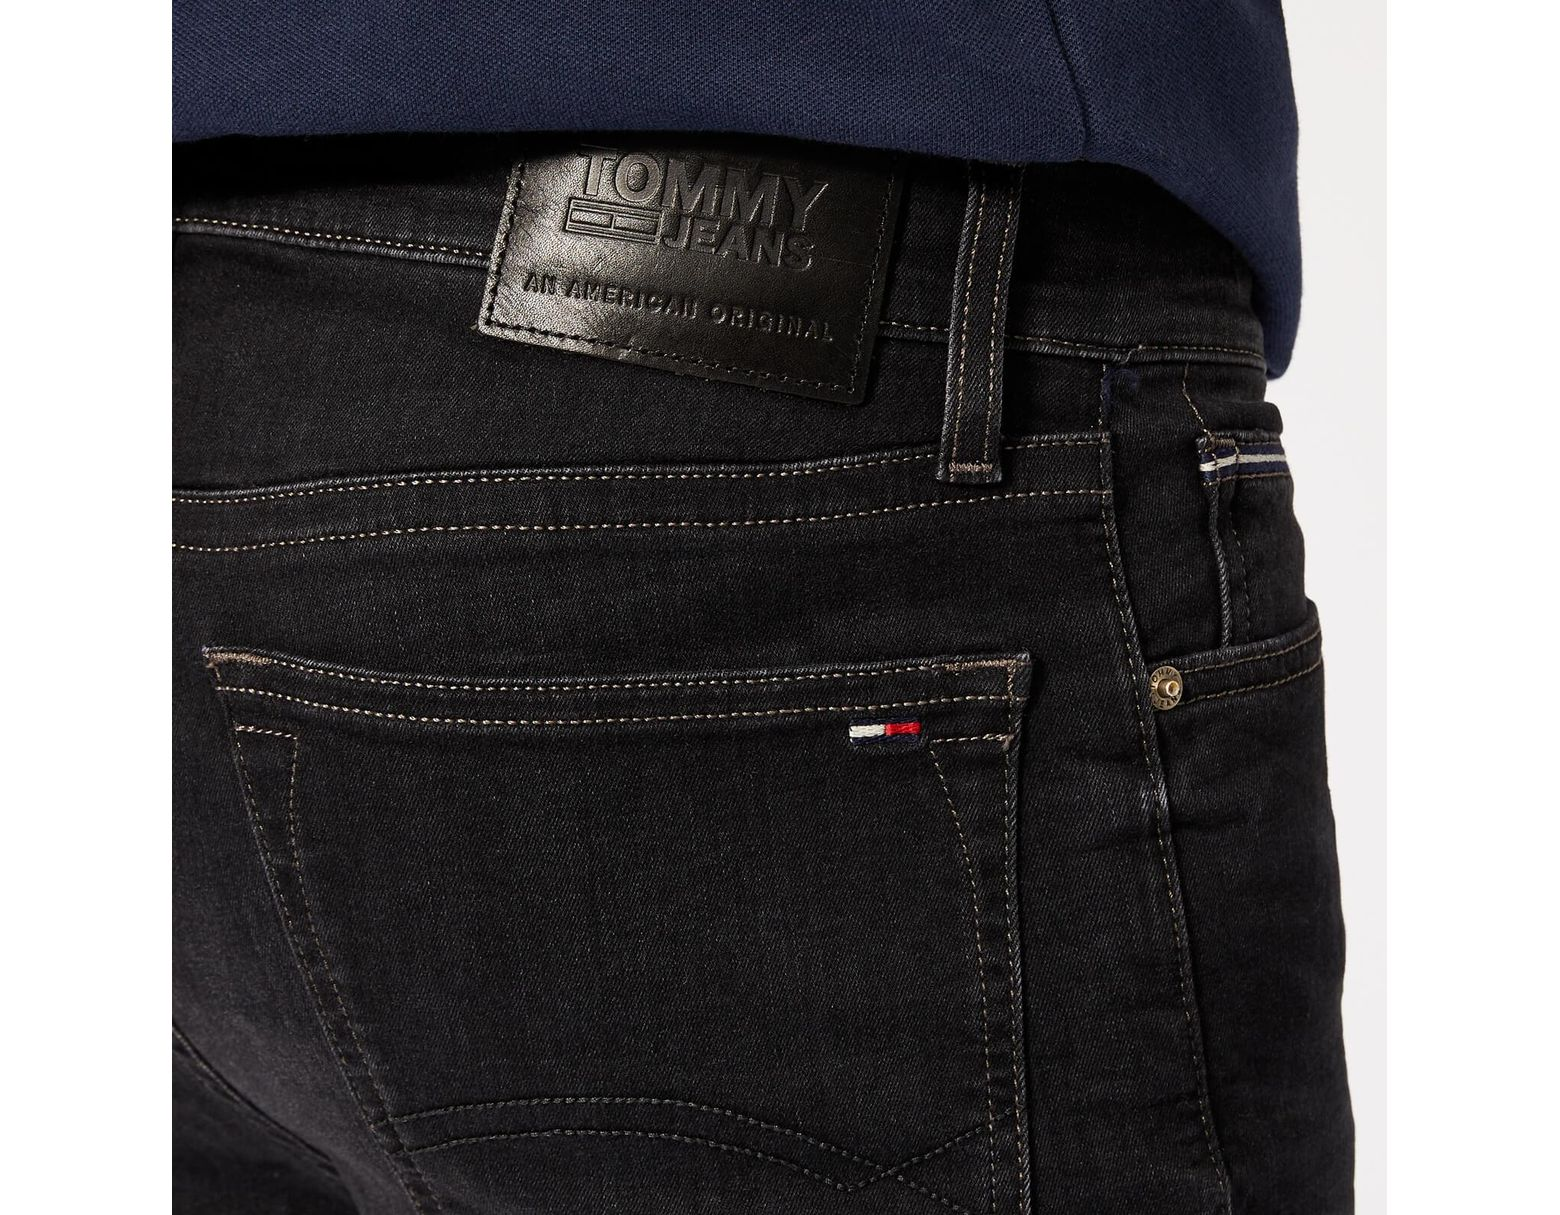 0ebafa6da Tommy Hilfiger Skinny Simon Jeans in Black for Men - Lyst